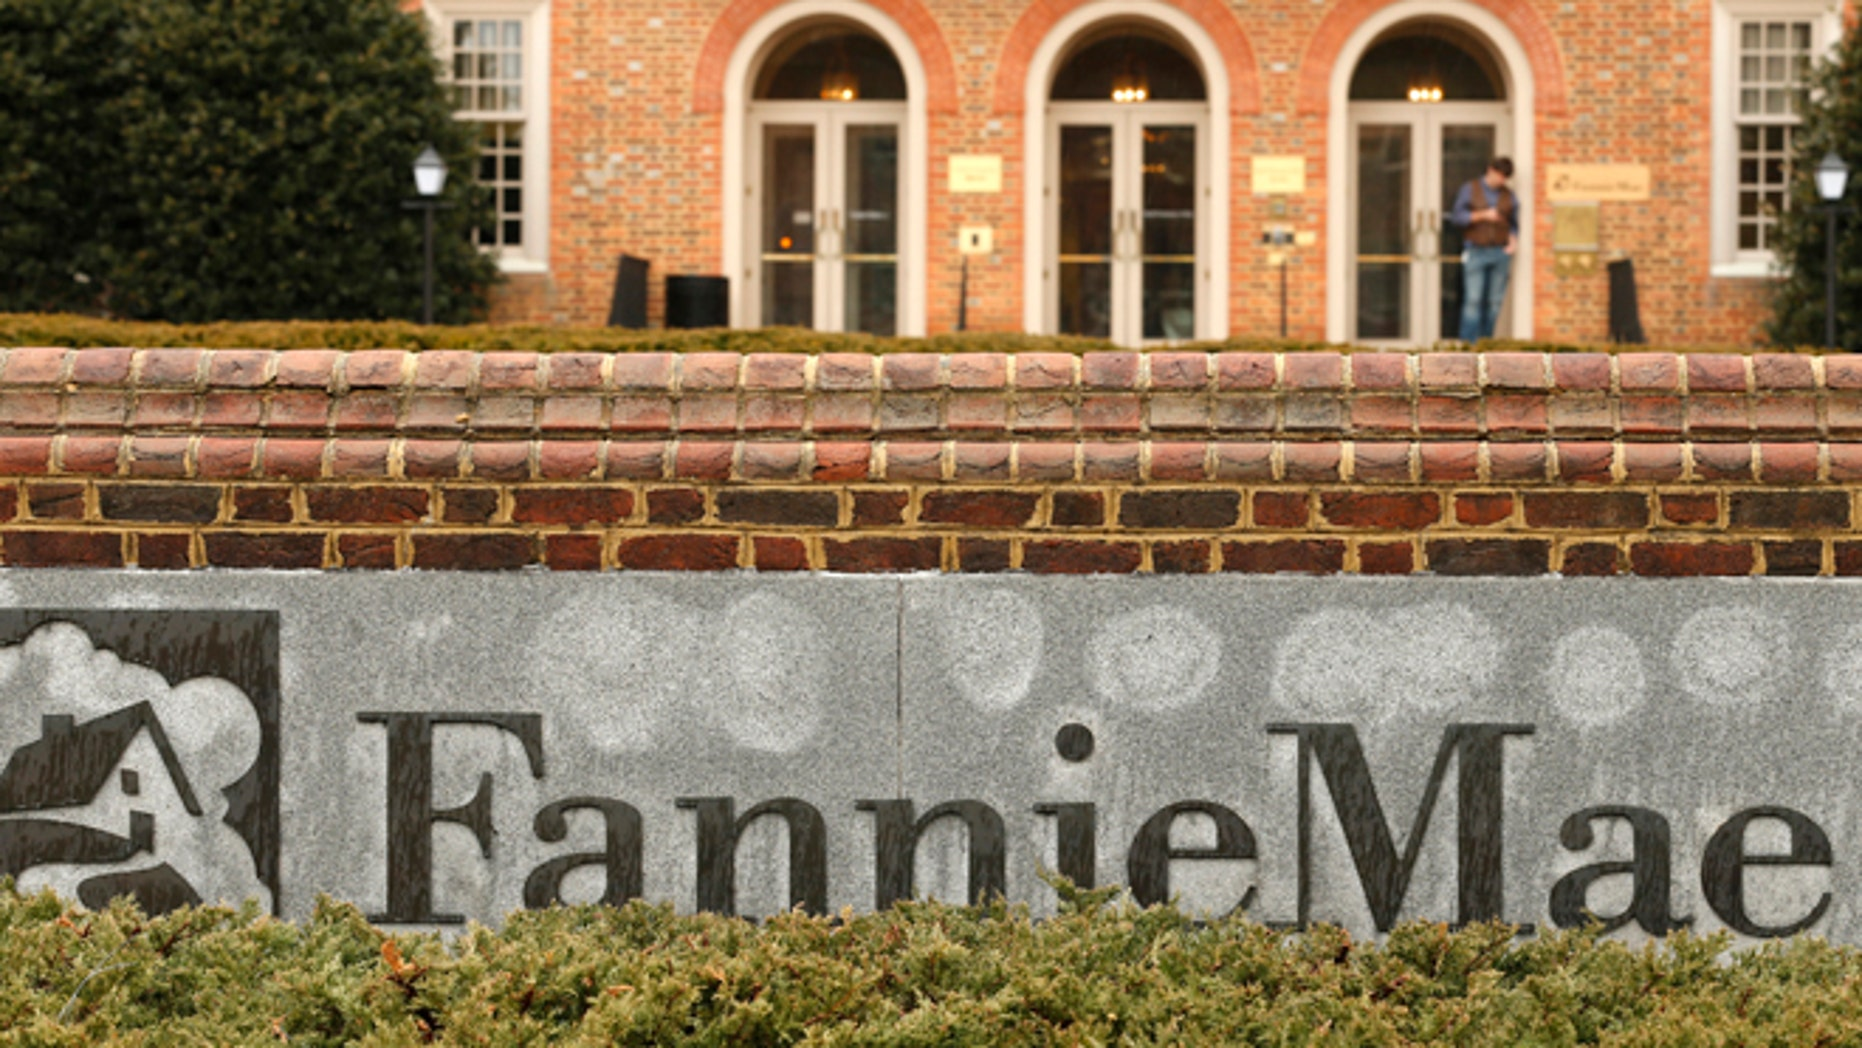 Fannie Mae headquarters is seen in this Feb. 21, 2014 file photo. (Reuters)